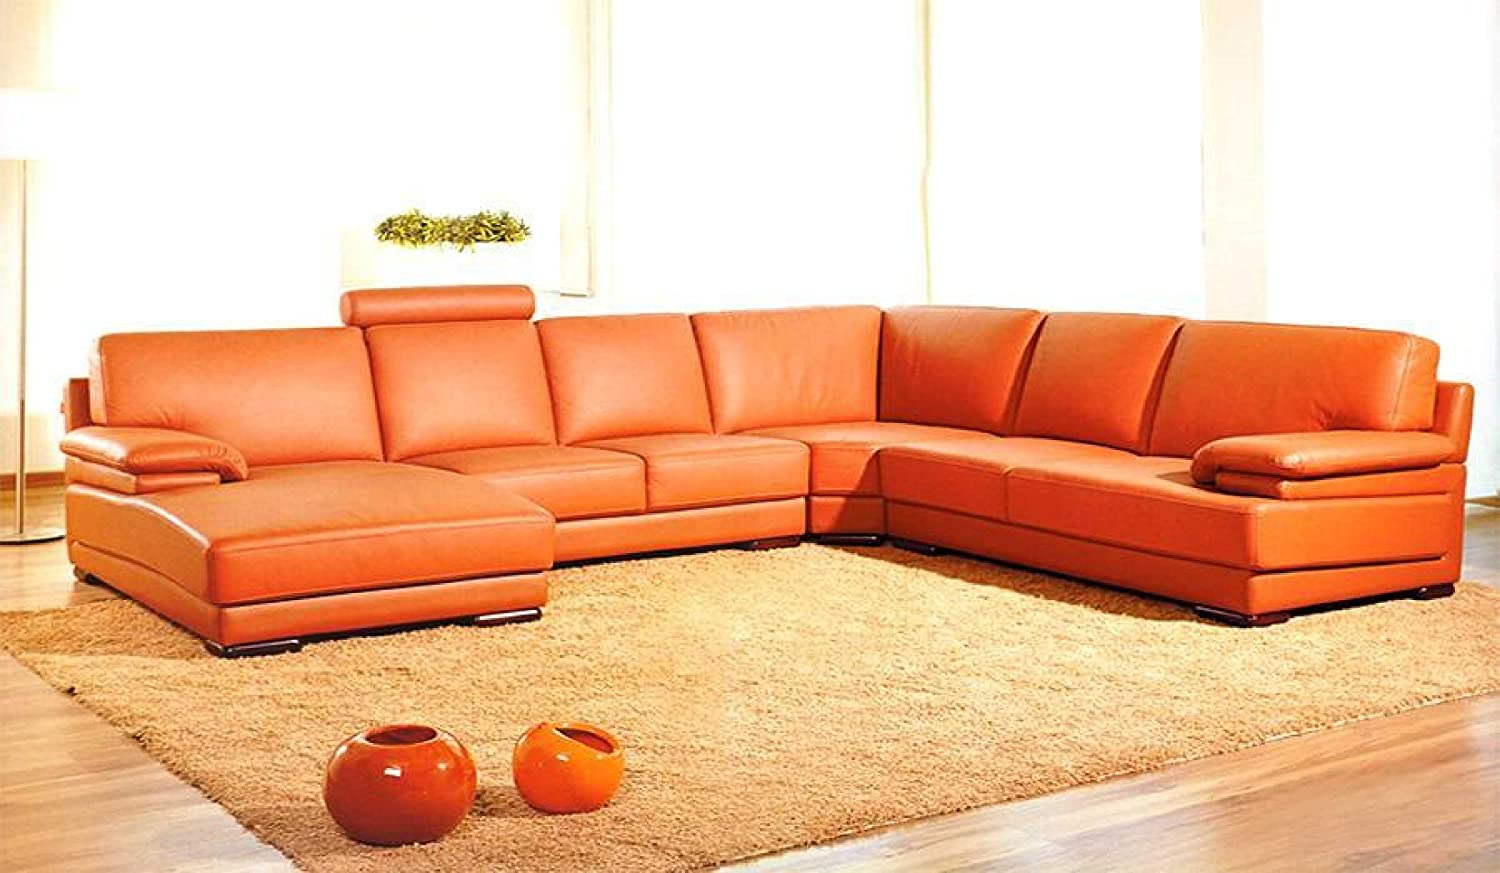 Amazon.com: 2227 Orange Leather Contemporary Sectional Sofa With Chaise:  Kitchen U0026 Dining